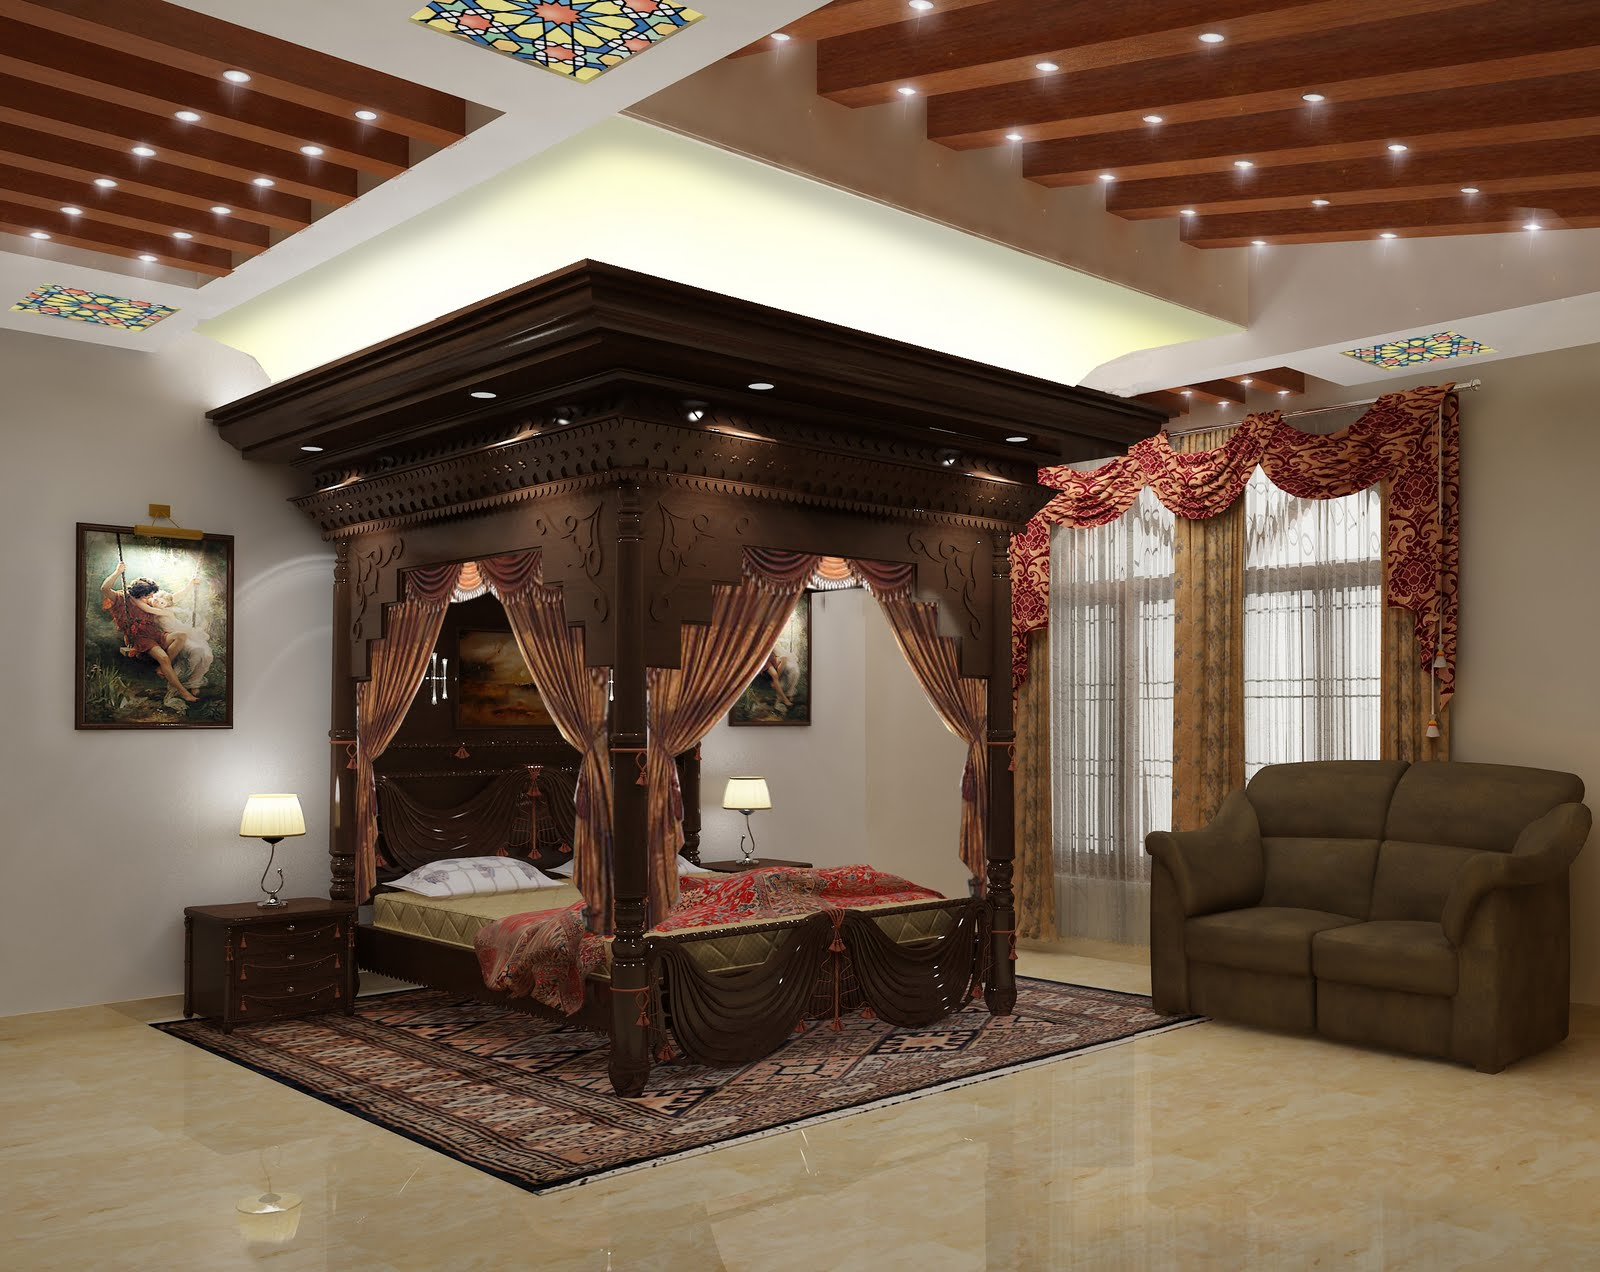 Interior design india for Indian interior design